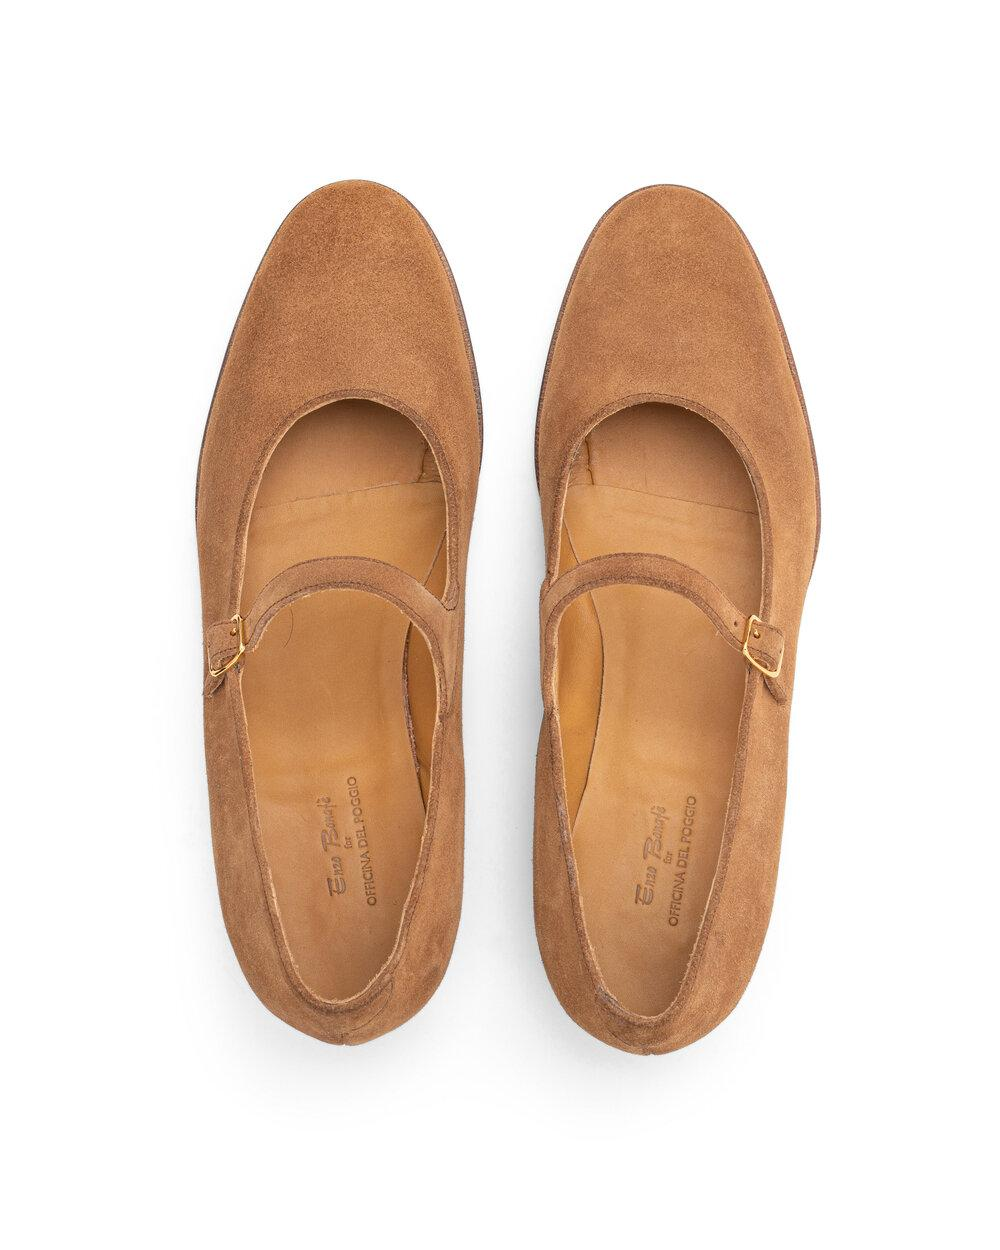 ODPEssentials Classic Mary Jane - Tan Suede 3